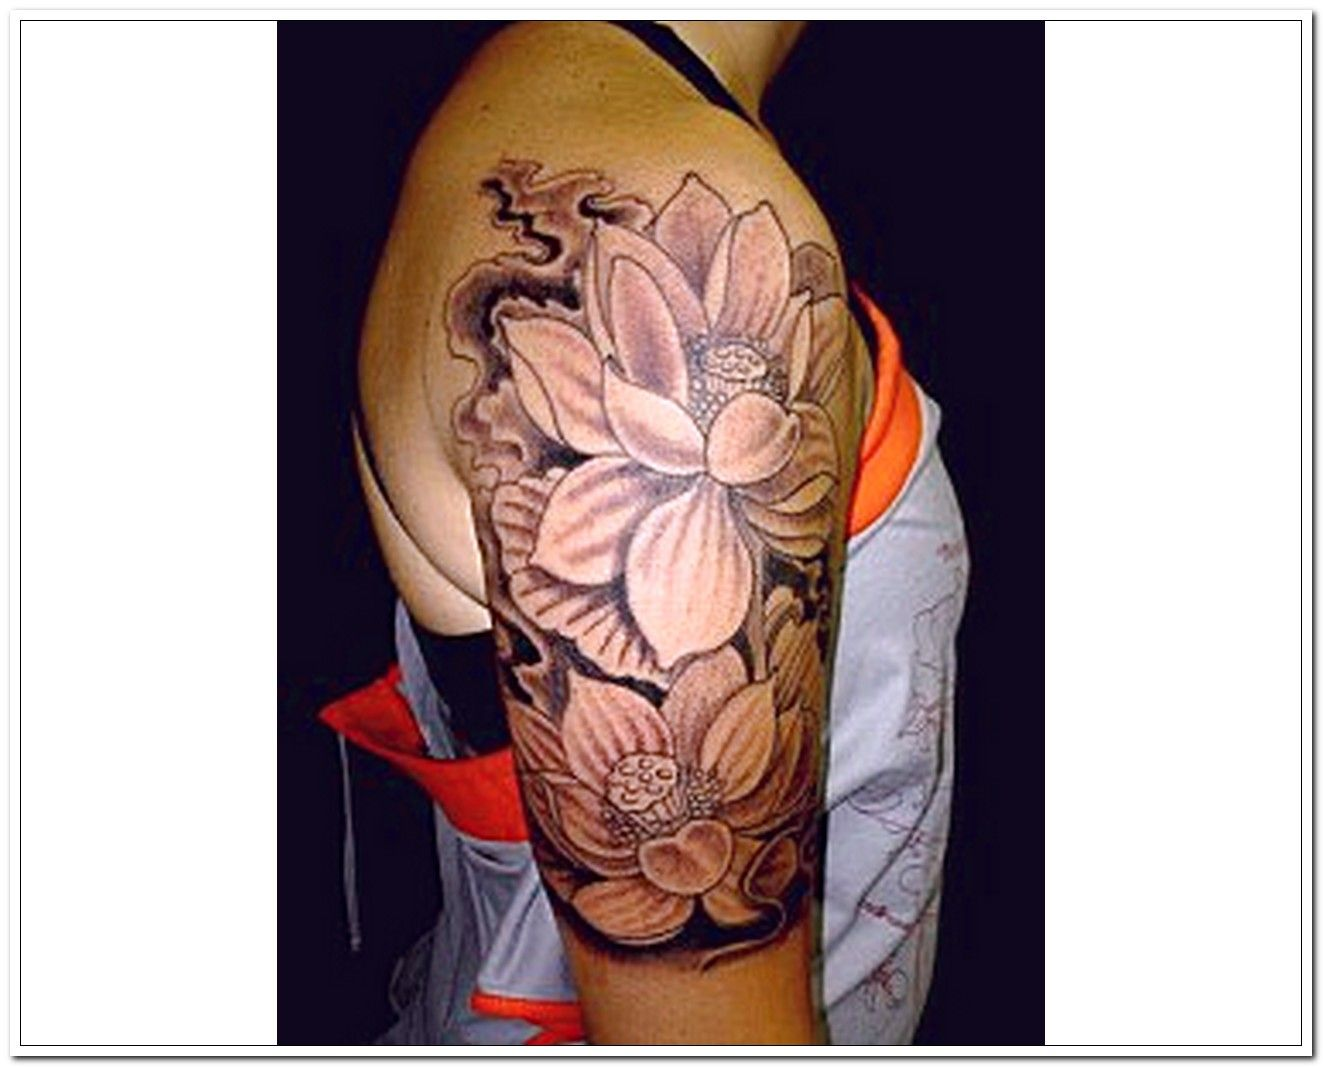 Lotus Tattoo Designs For Shoulders Tattoos For Women Half Sleeve Arm Sleeve Tattoos For Women Half Sleeve Tattoo